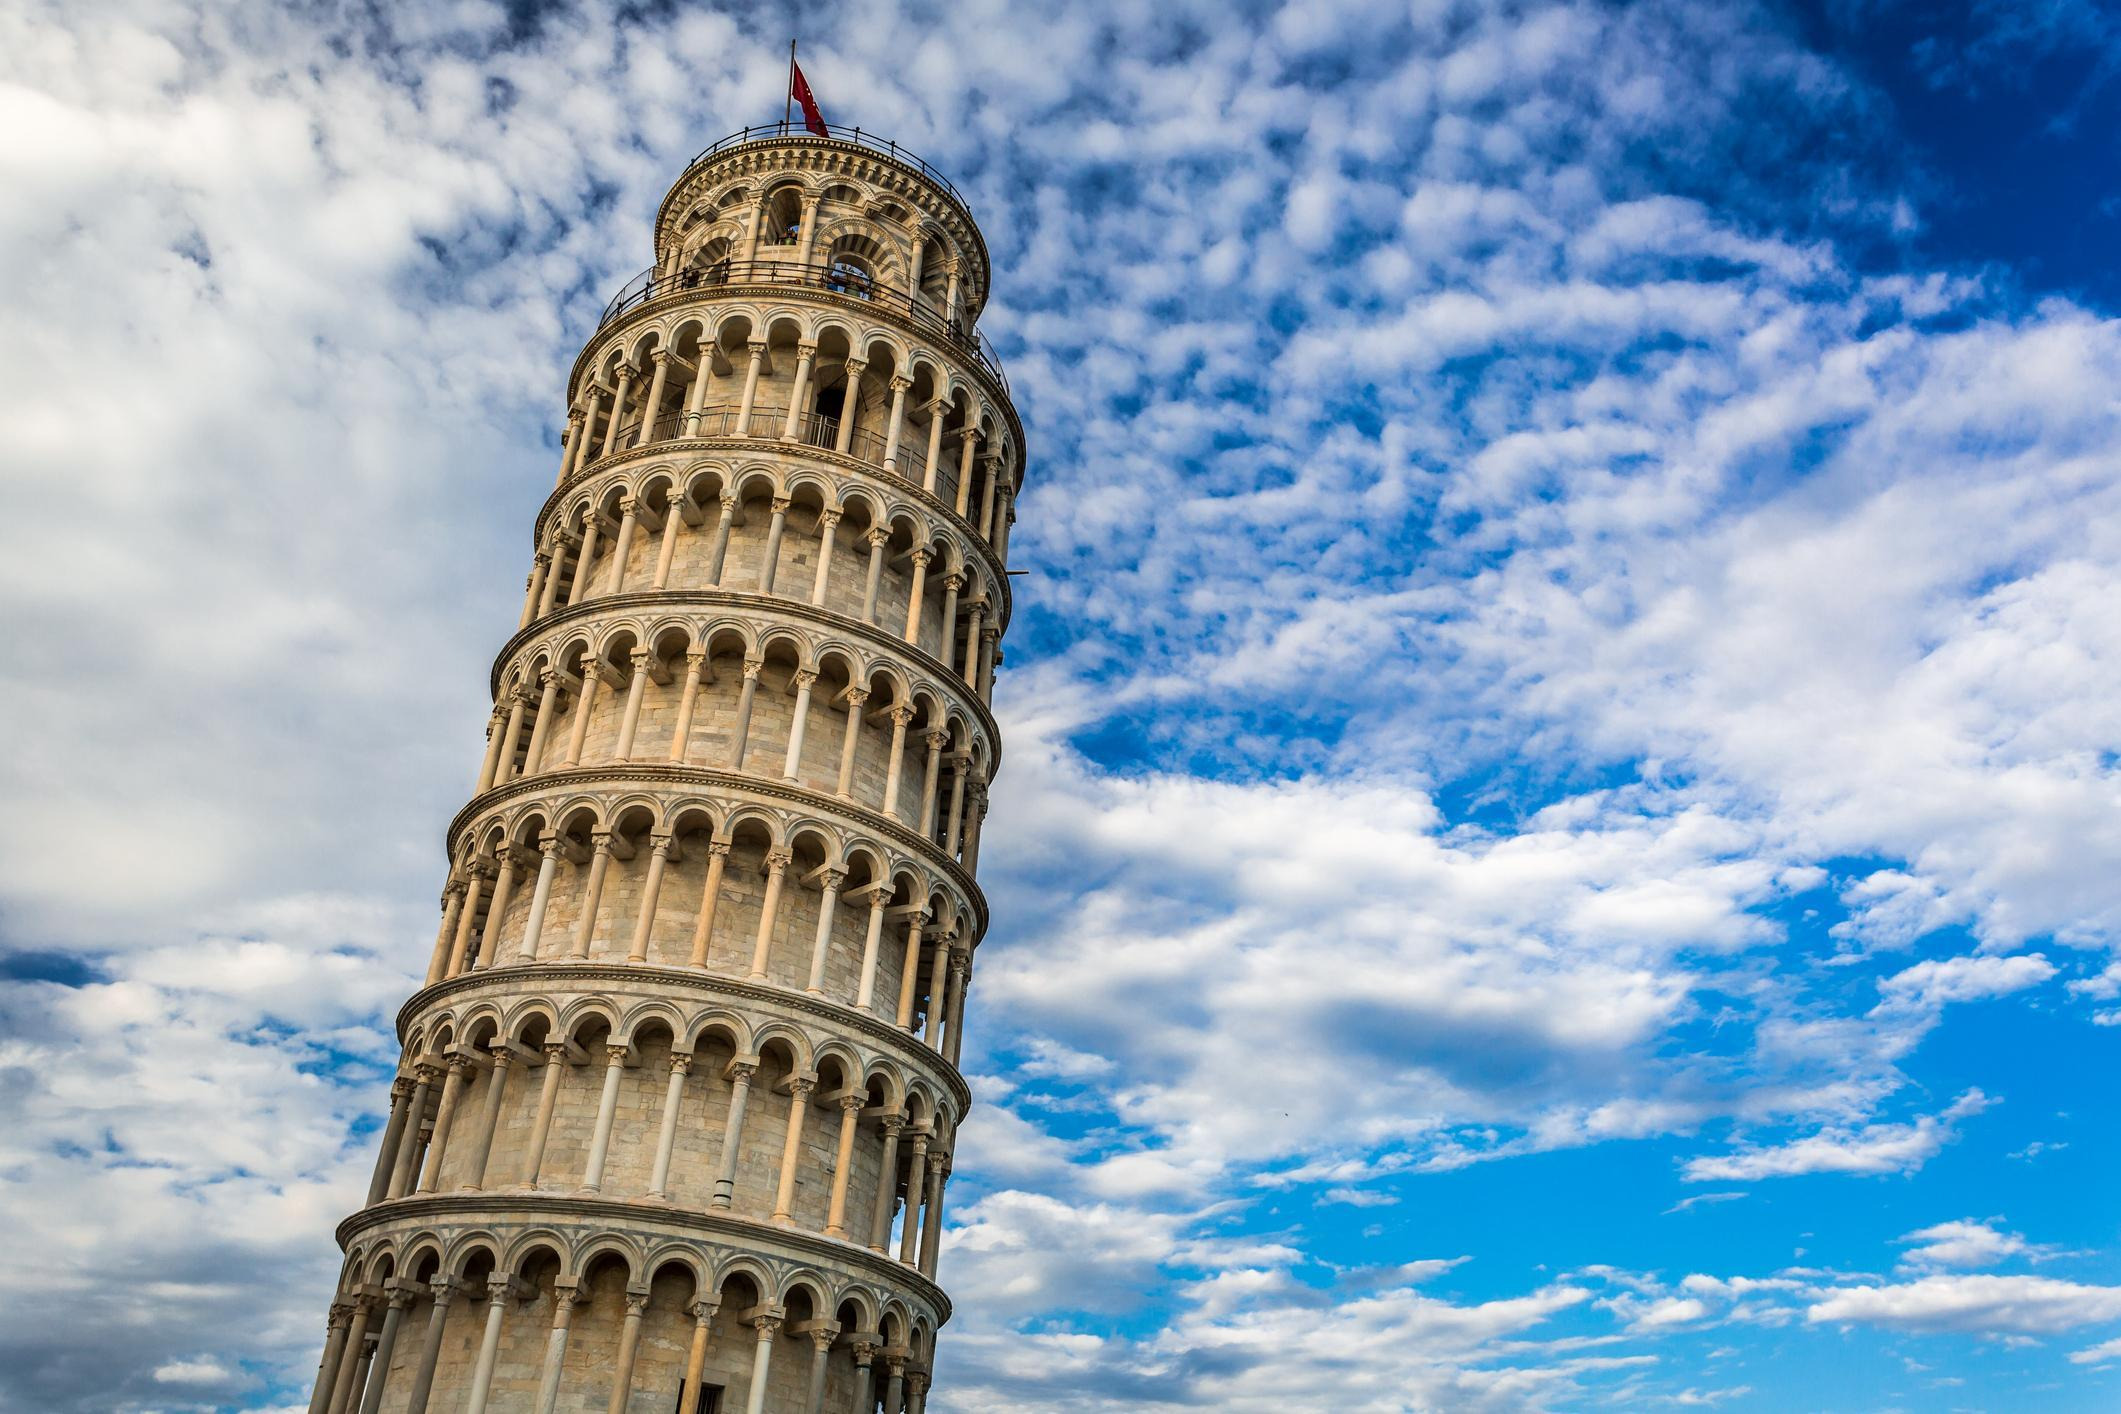 How to Spend 1 Day in Pisa